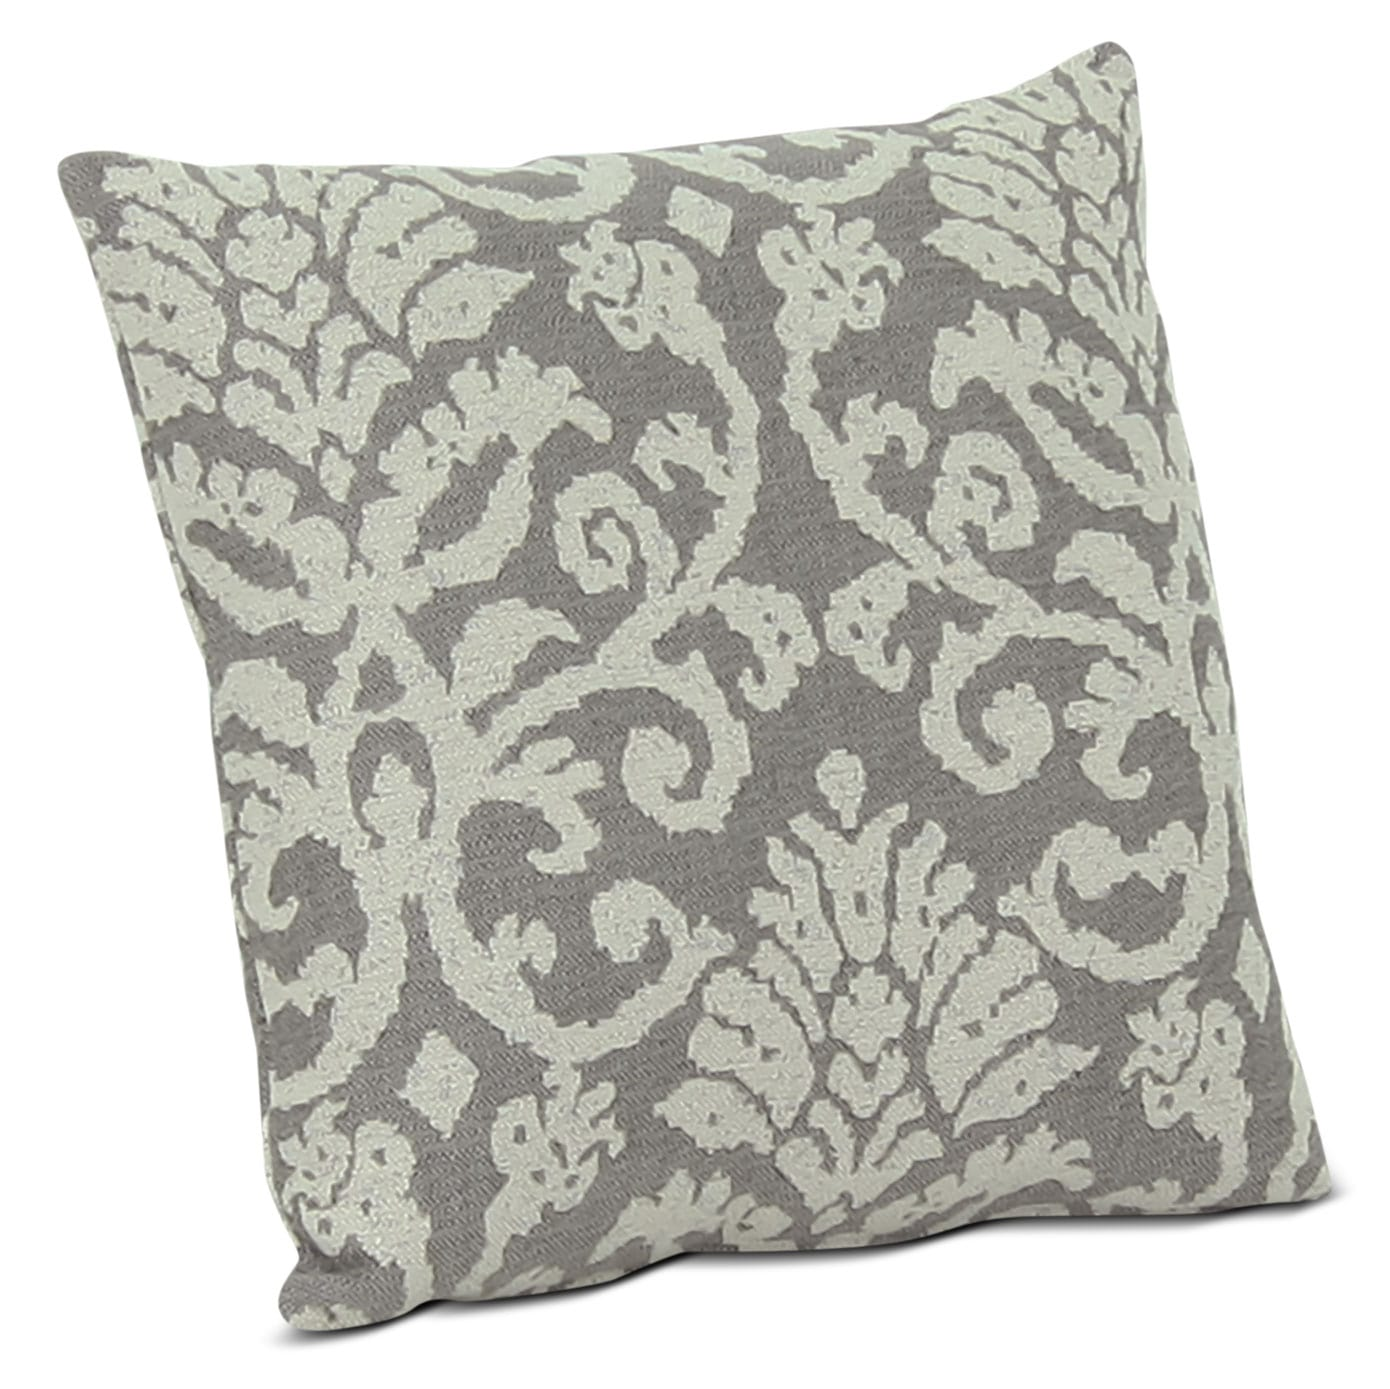 Designed2B Fabric Accent Throw Pillow – Linen